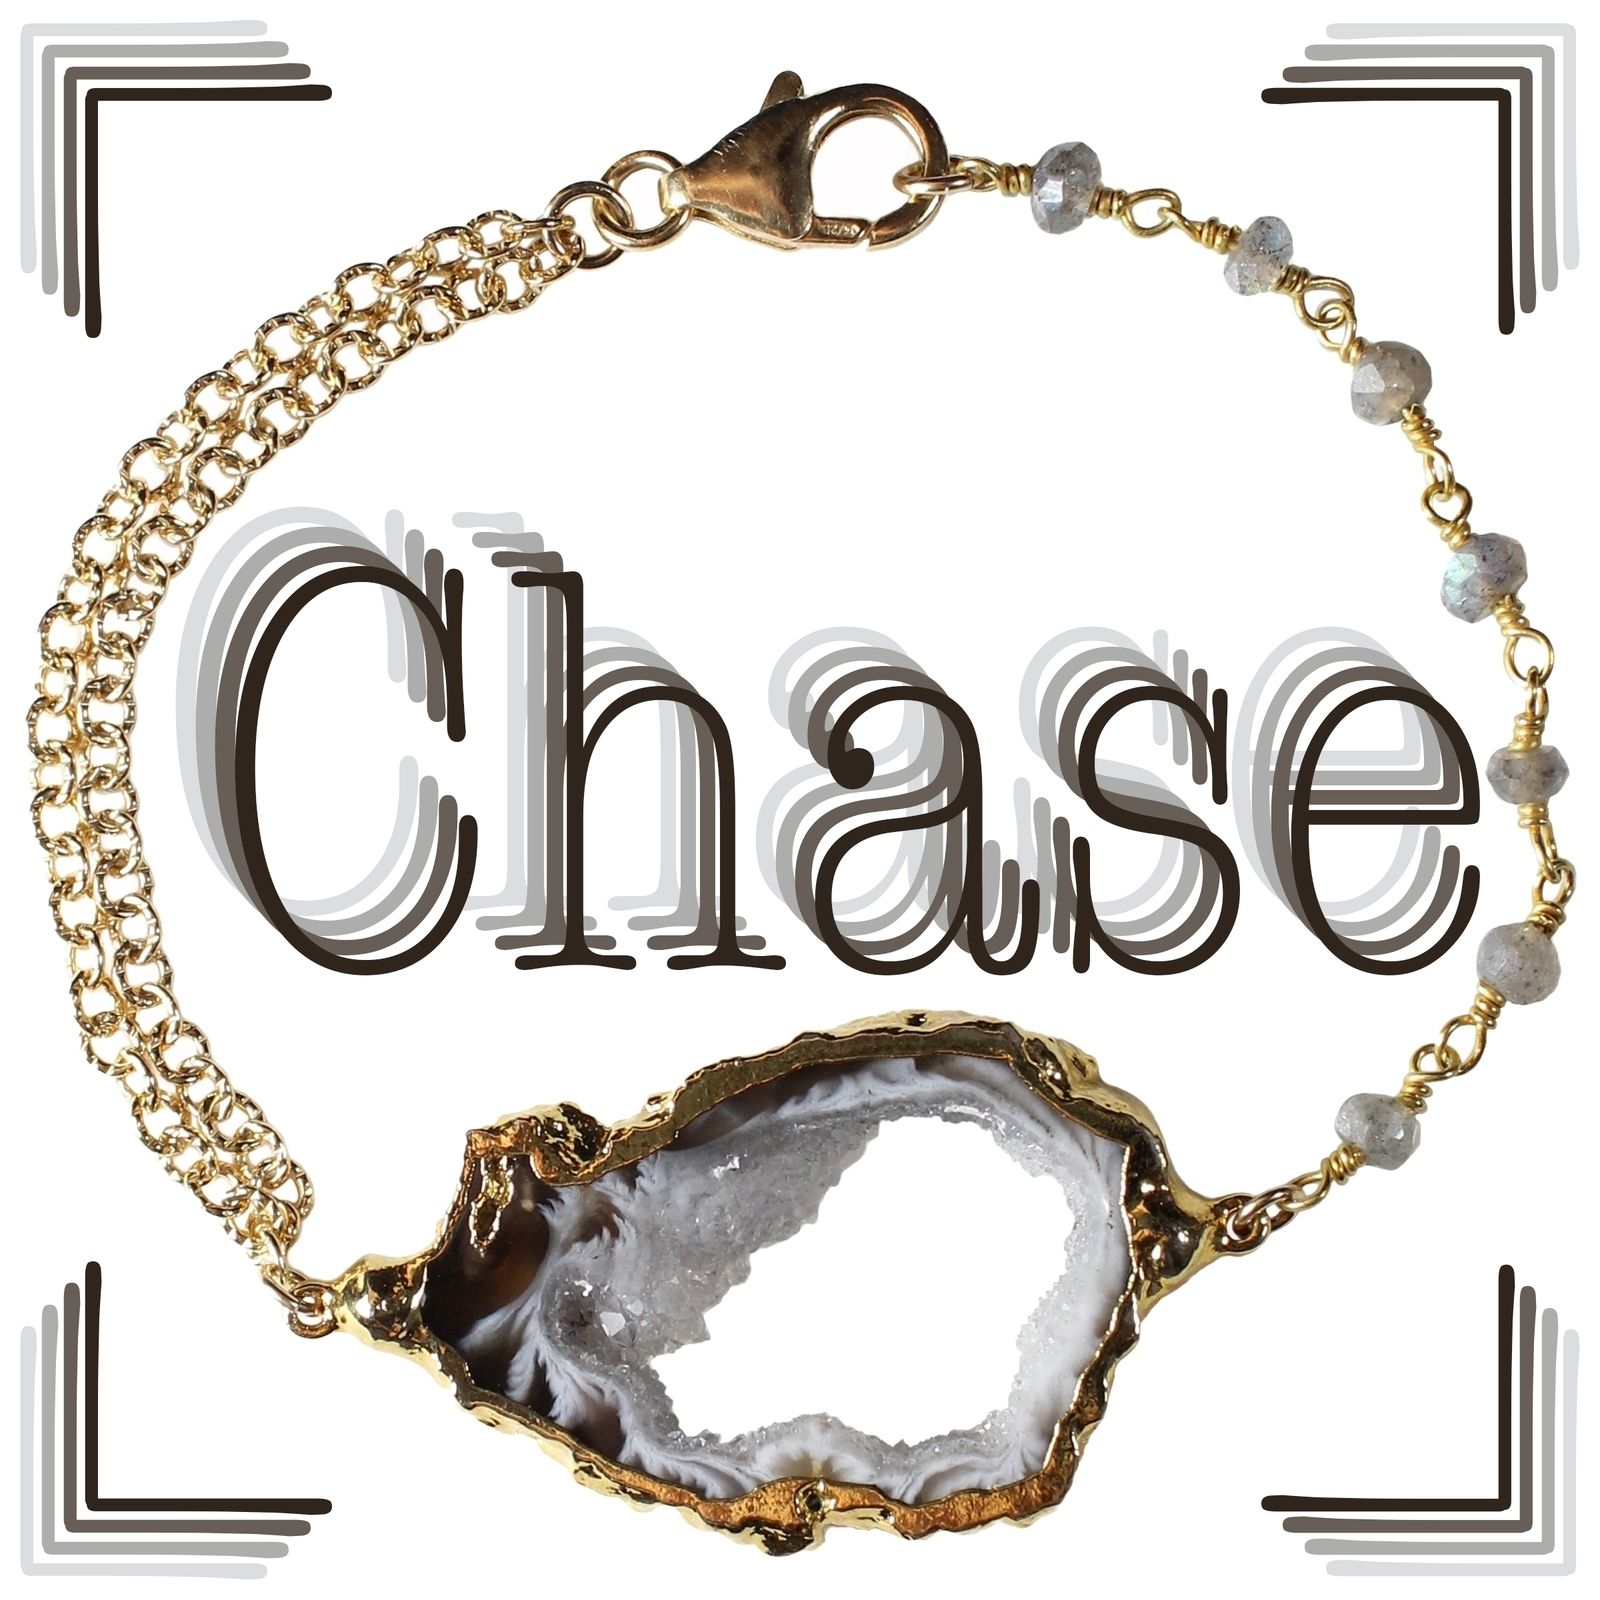 CHASE | The perfect gift! Could be worn with it's sister necklace, Vienna, or on it's own. You decide. www.charmesilkiner.com #aotd #charmesilkiner